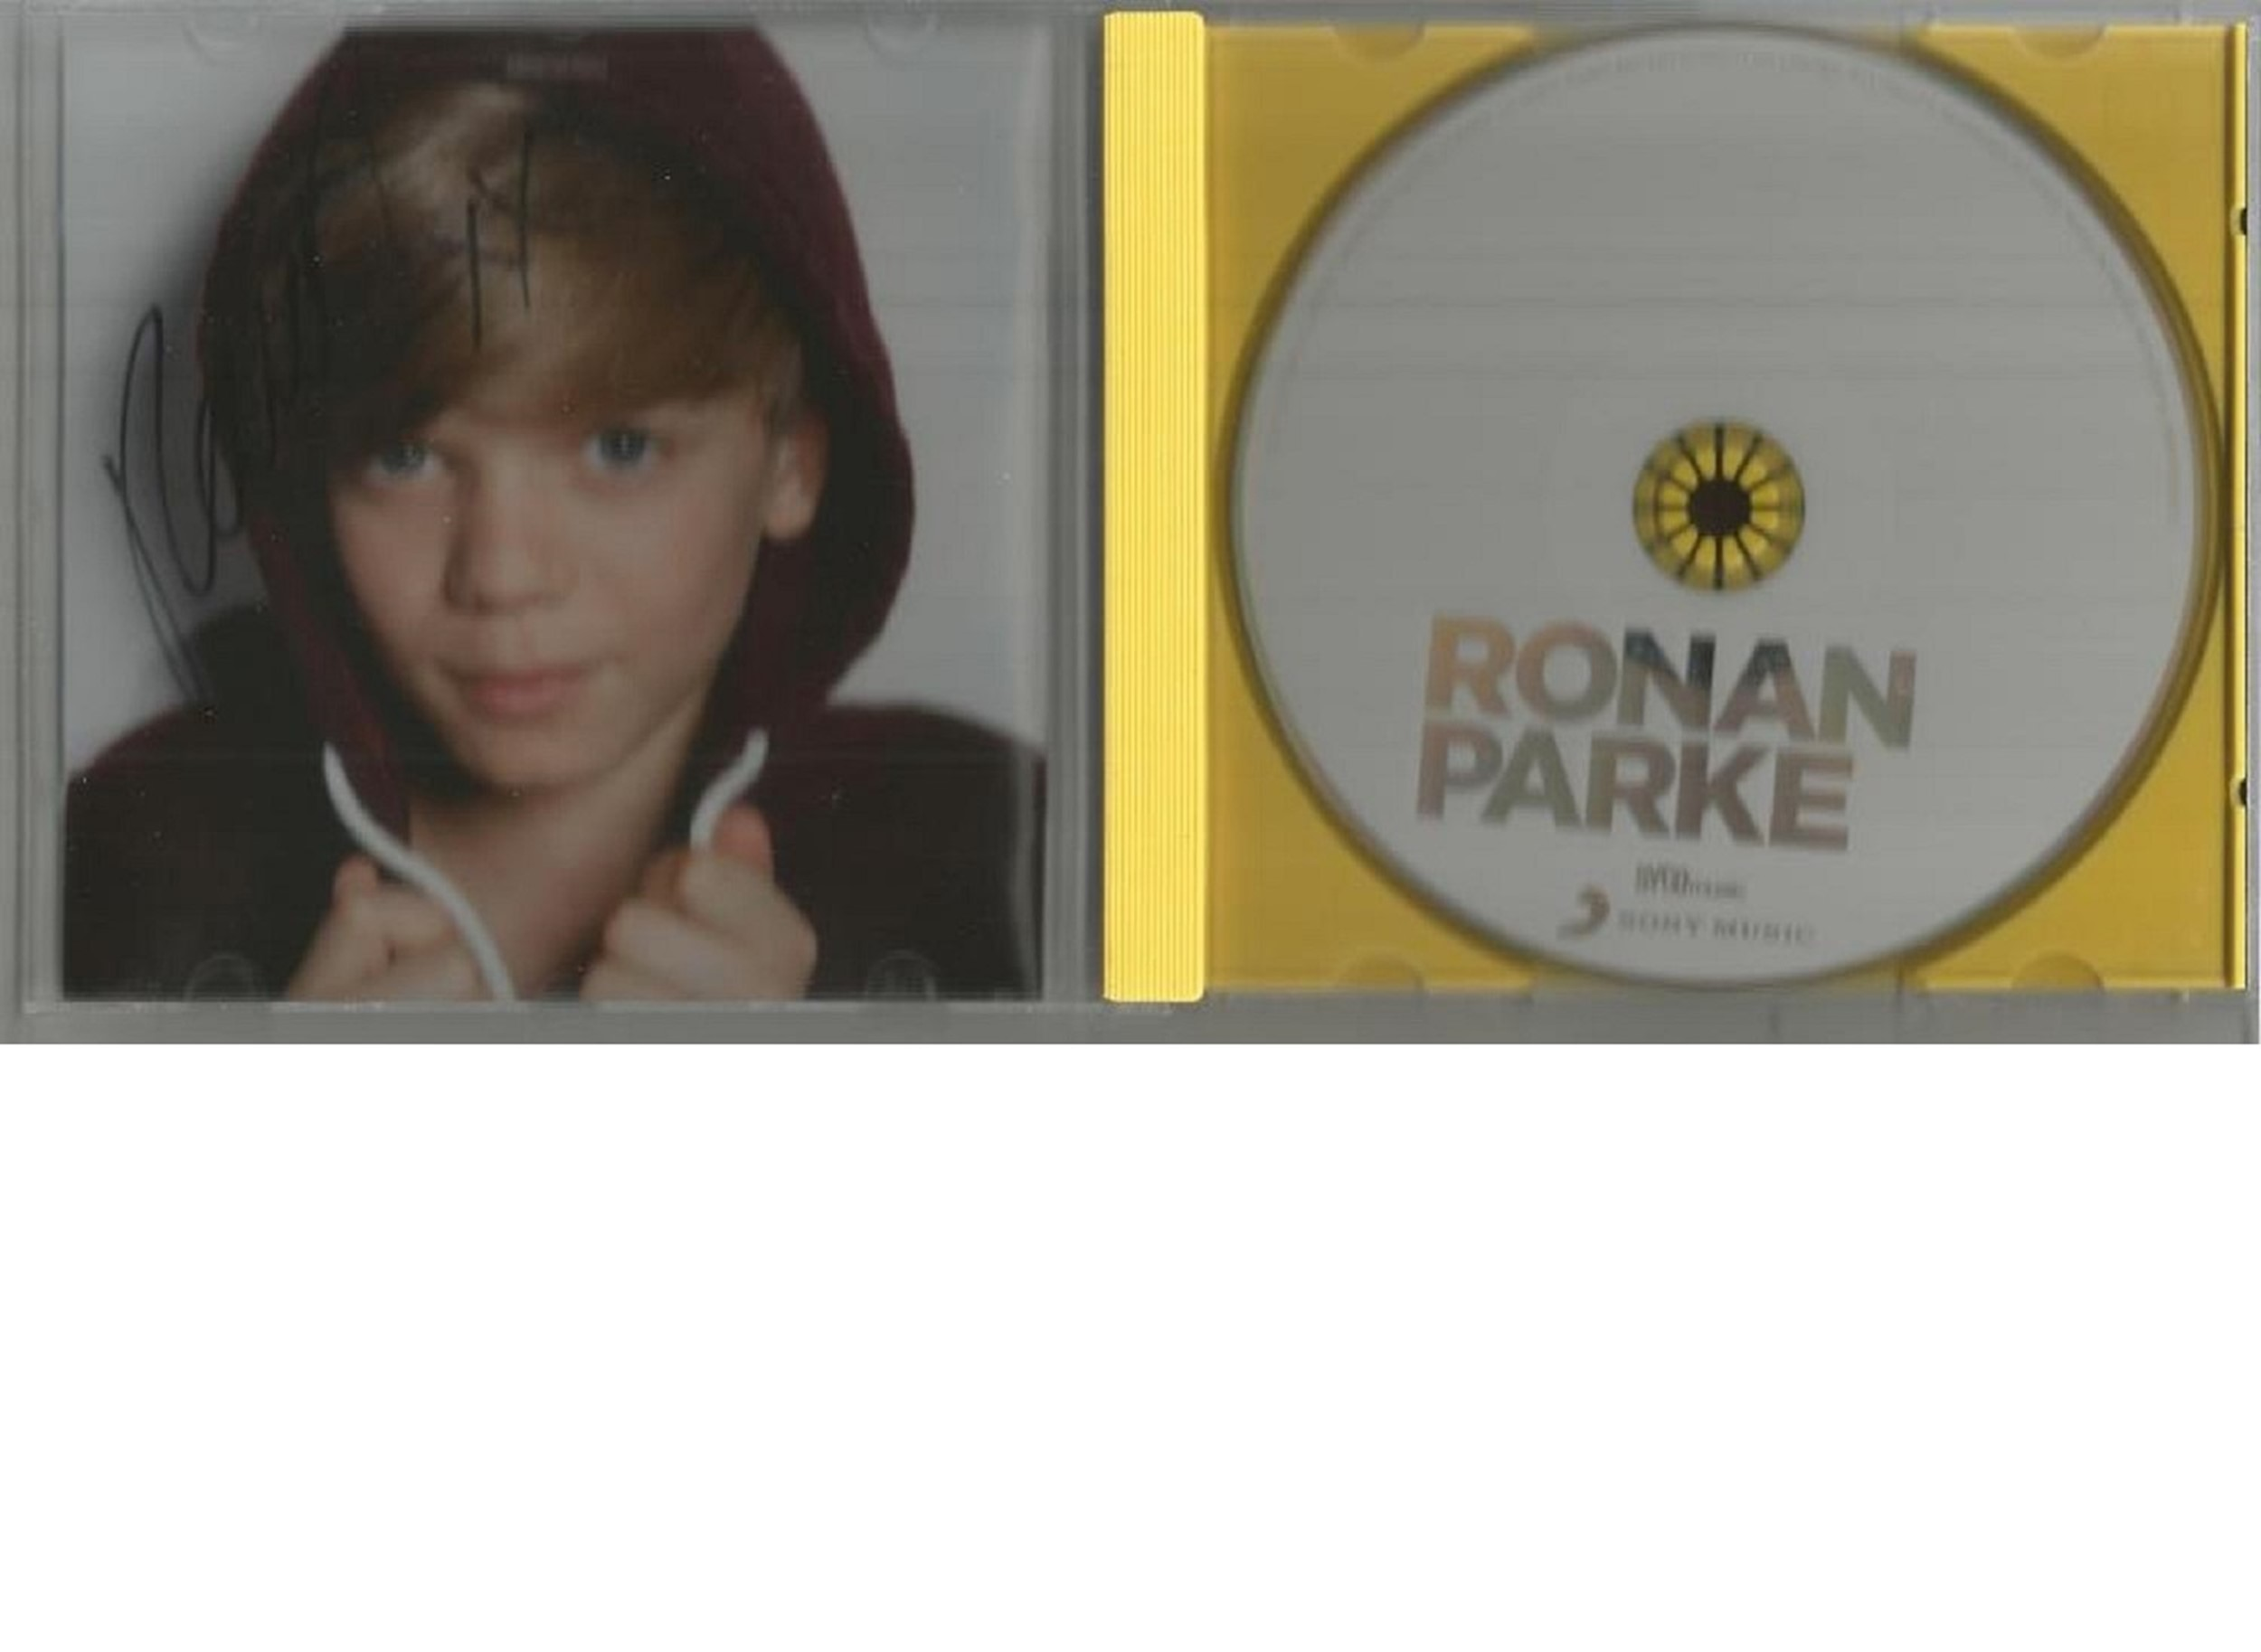 6 Signed CDs Including Belle Canto Whisper of Angels Disc Included, Pissboy Dream City Film Club - Image 2 of 3